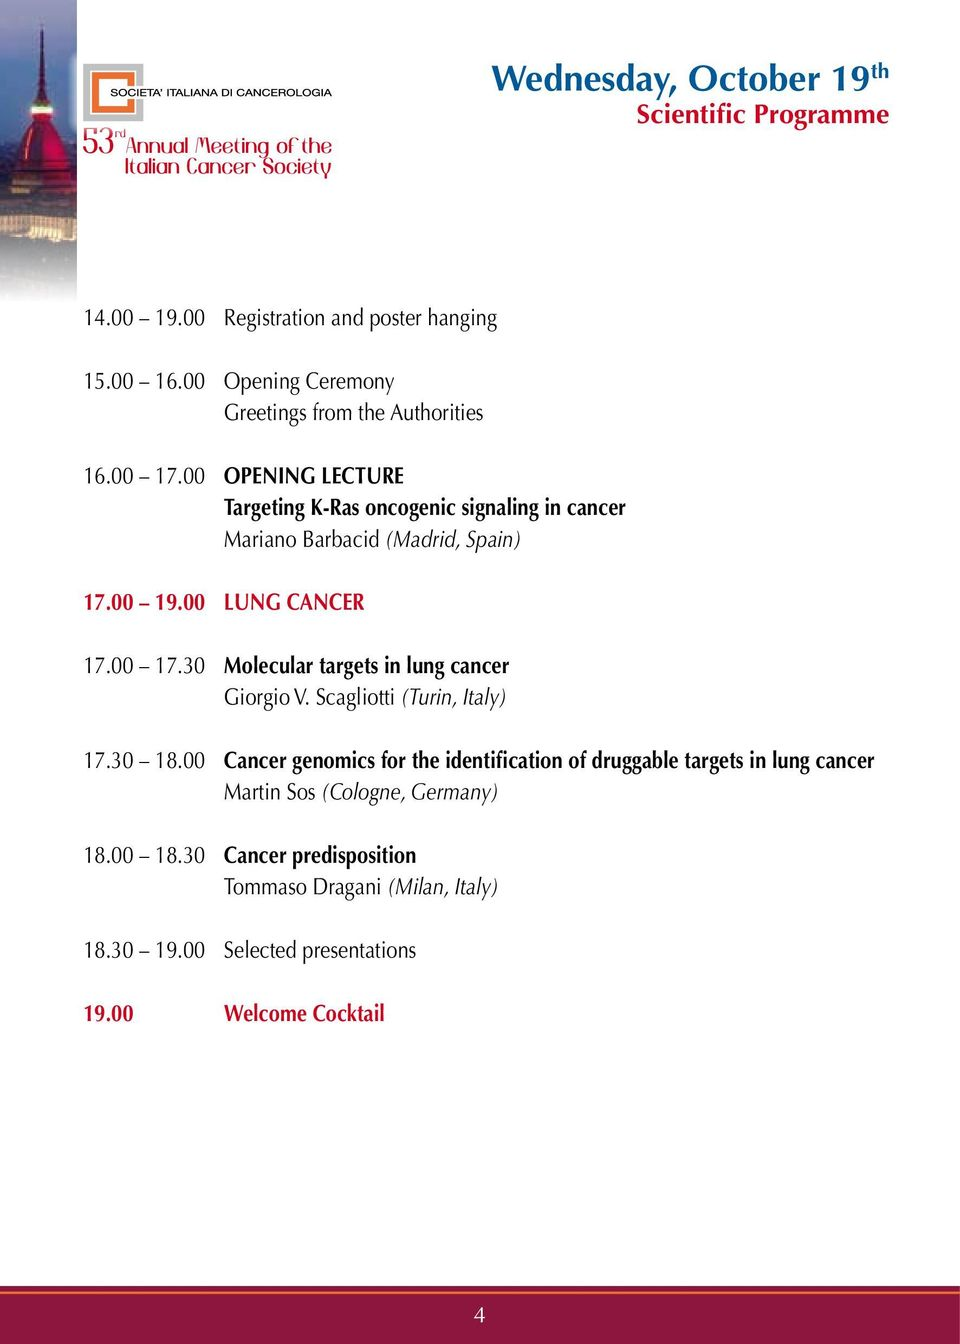 00 OPENING LECTURE Targeting K-Ras oncogenic signaling in cancer Mariano Barbacid (Madrid, Spain) 17.00 19.00 LUNG CANCER 17.00 17.